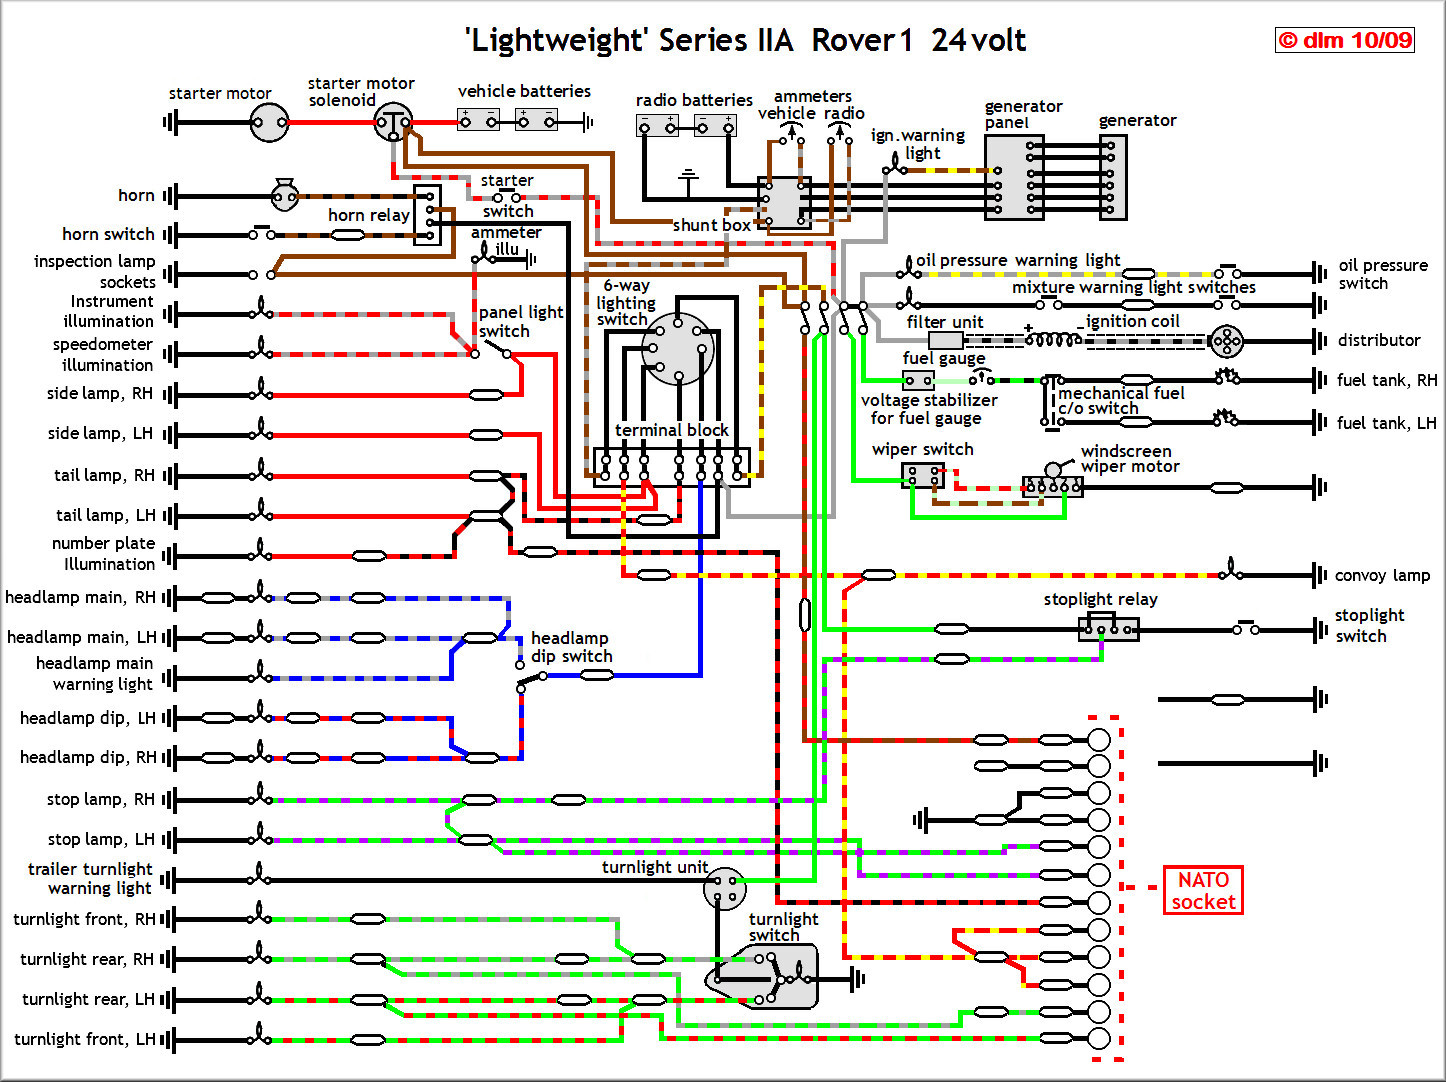 rover1 24Av land rover wiring diagram land wiring diagrams instruction Land Rover Series IIA 109 at creativeand.co